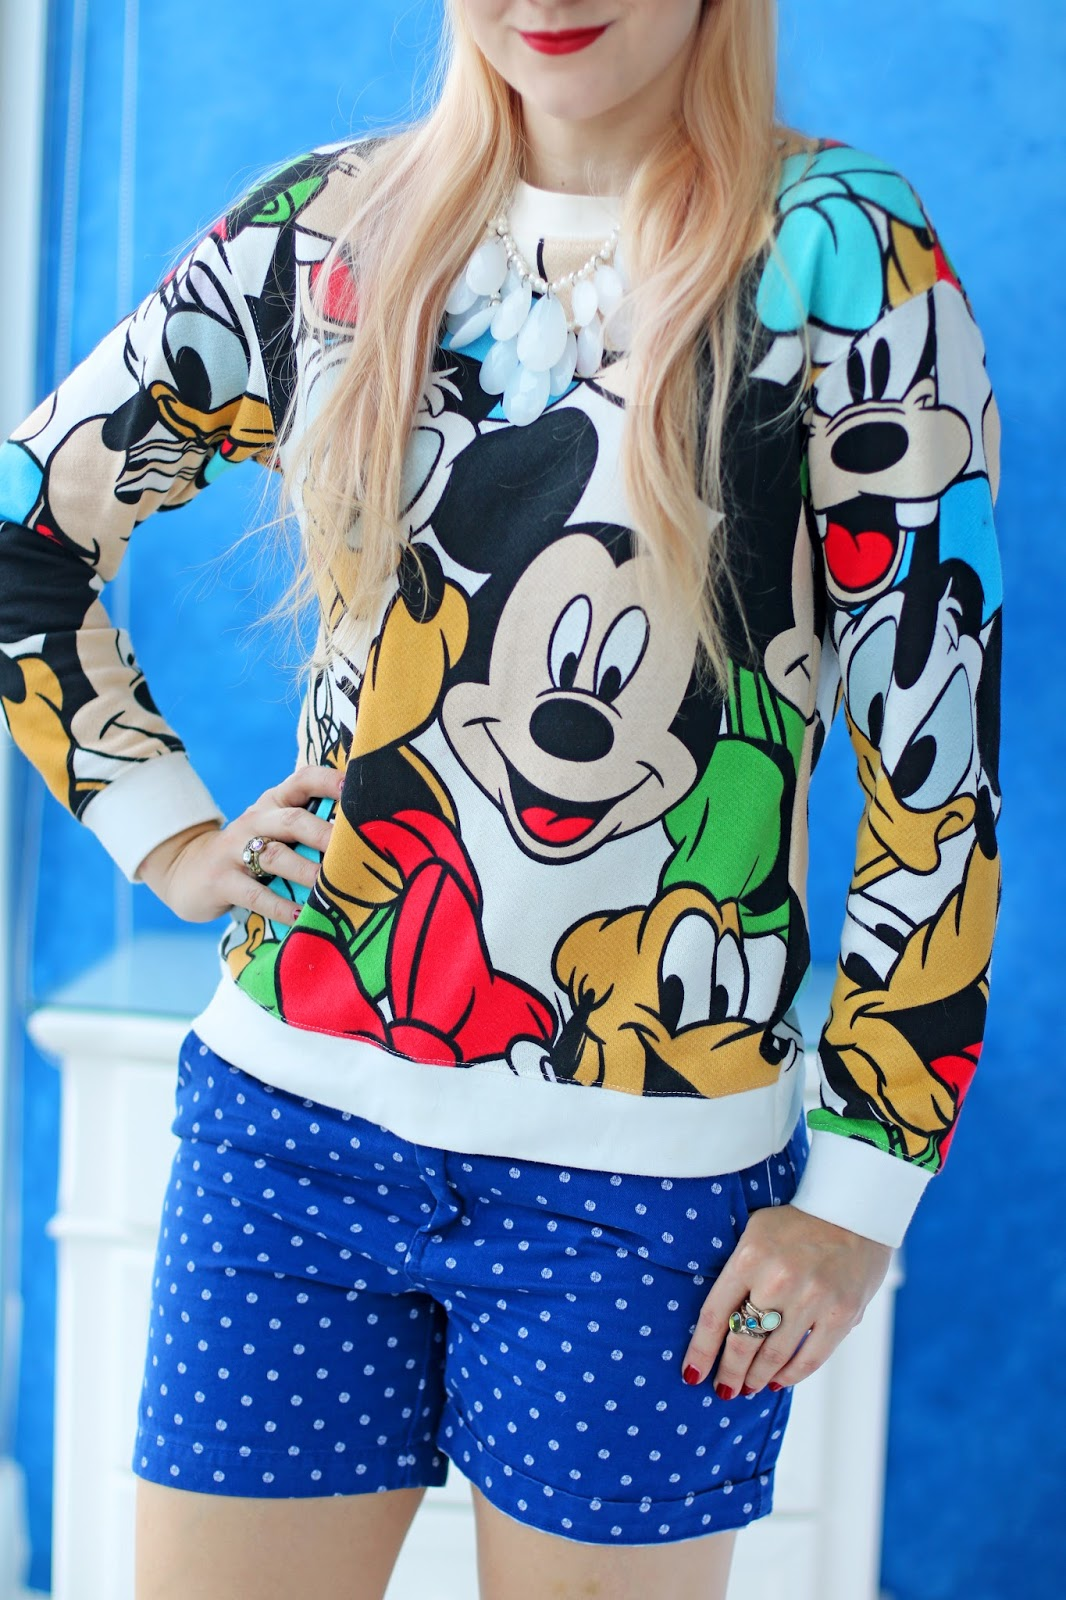 Cute Disney sweater outfit